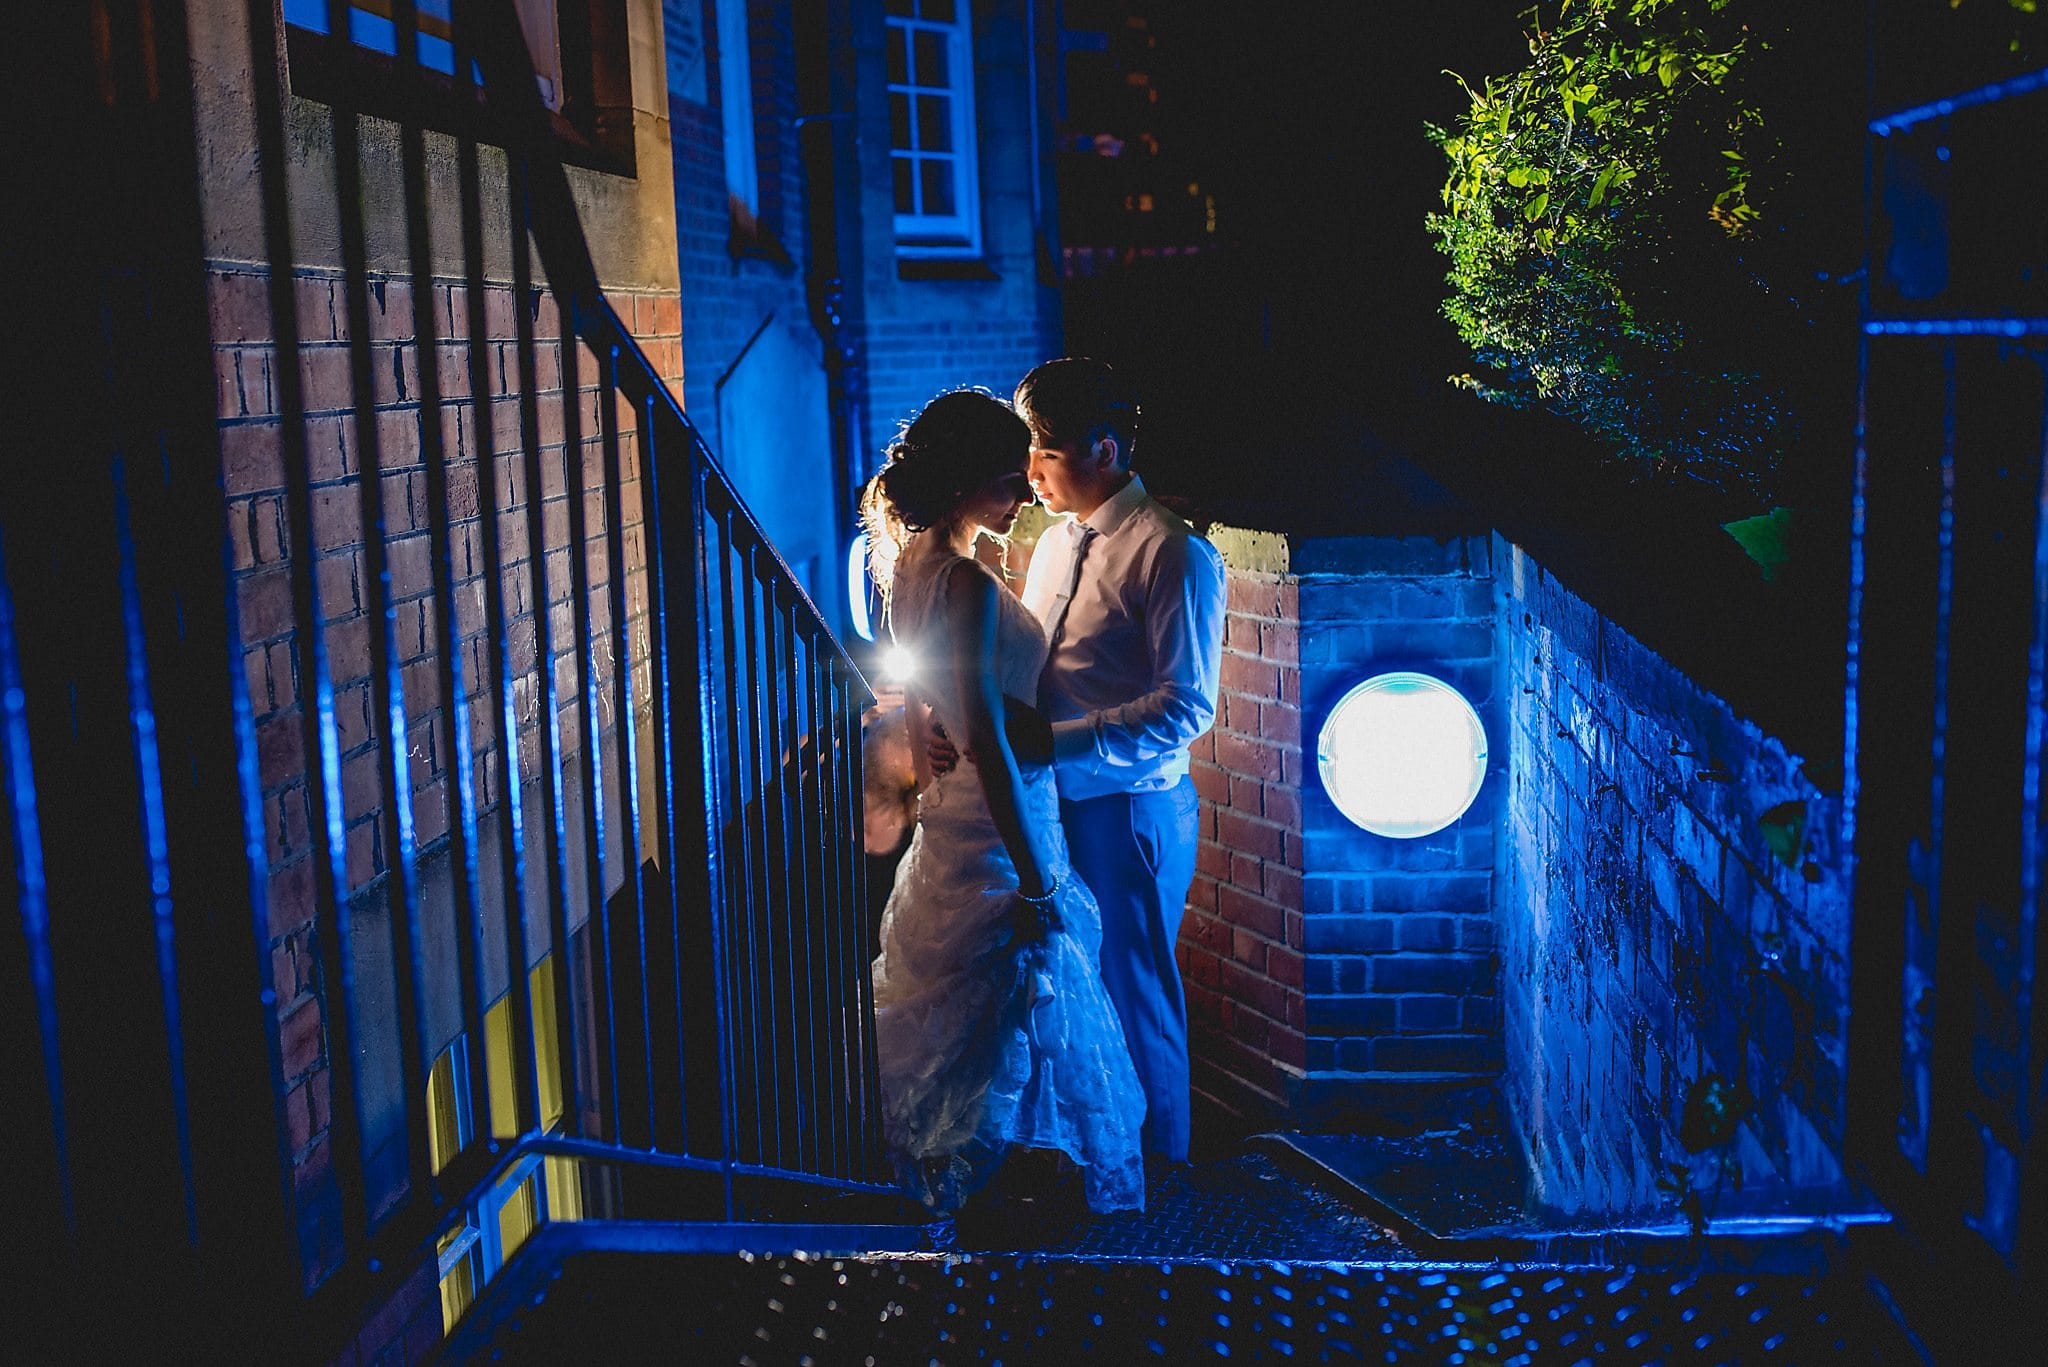 Bride and groom at night, lit by blue light